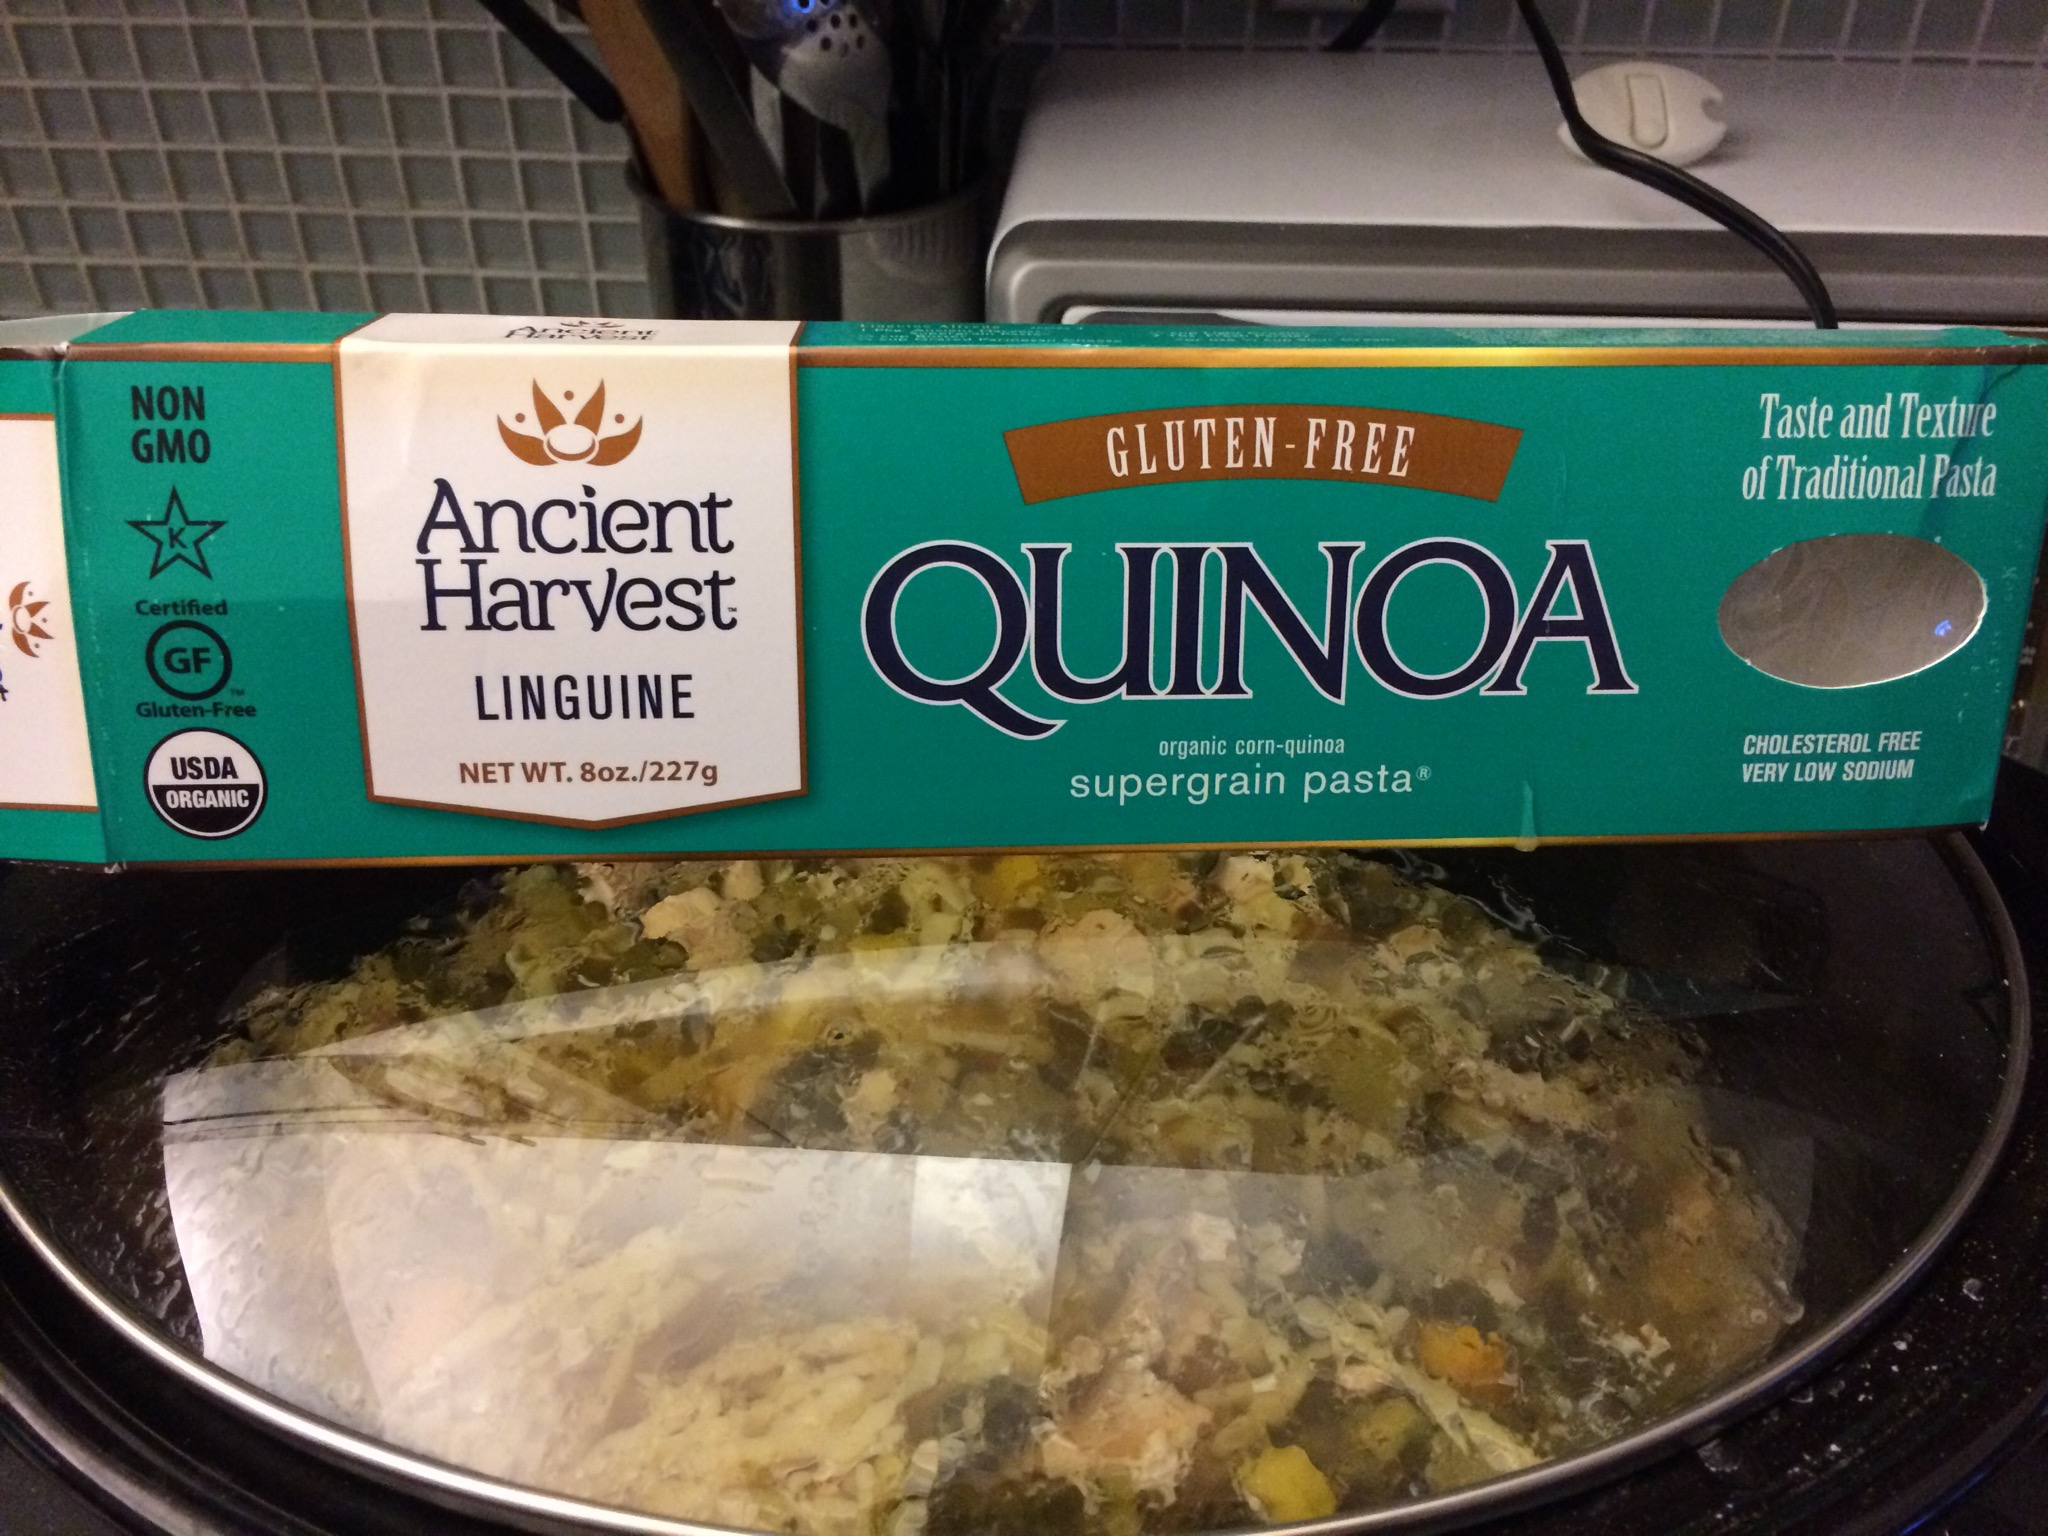 Quinoa linguini is a great alternative to traditional pasta